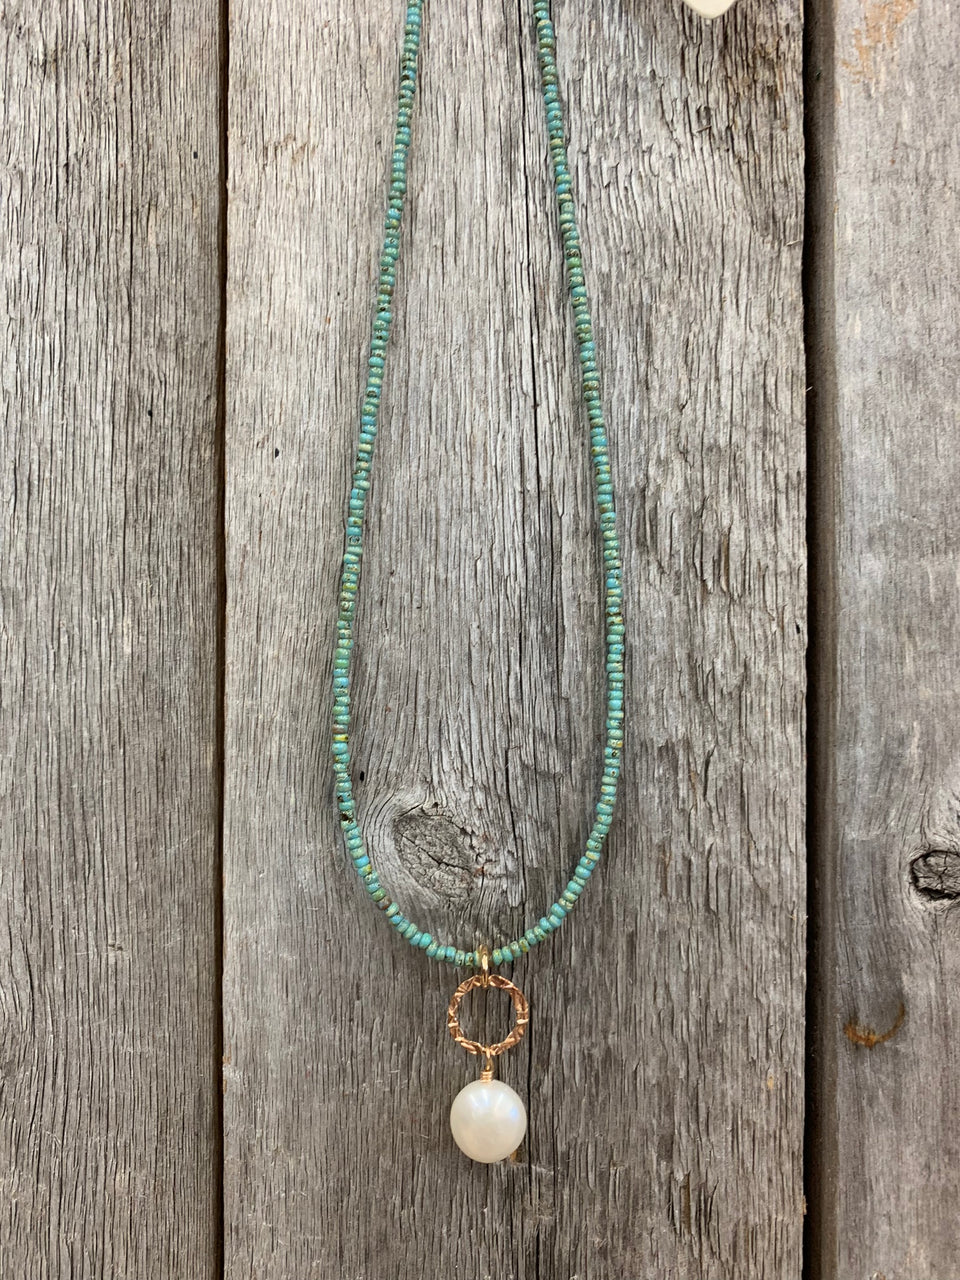 "J.Forks Designs necklace hanging on a wooden backdrop. This is a 16"" turquoise seed beads necklace with a hammered bronze ring and freshwater pearl drop."